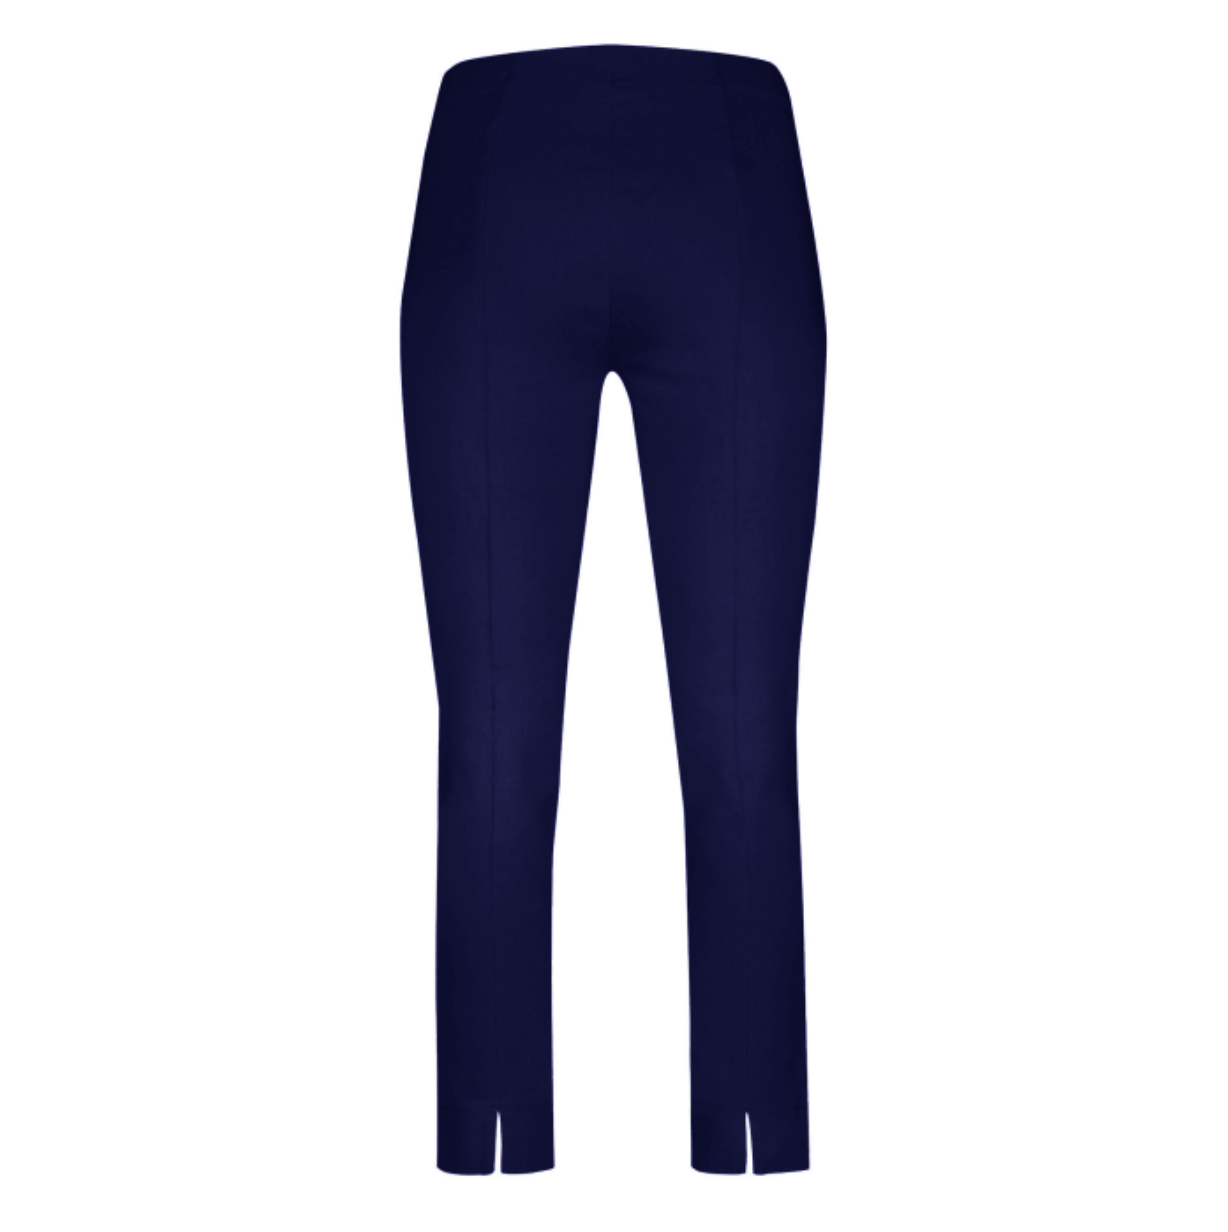 Robell Rose 7/8ths Navy Trousers